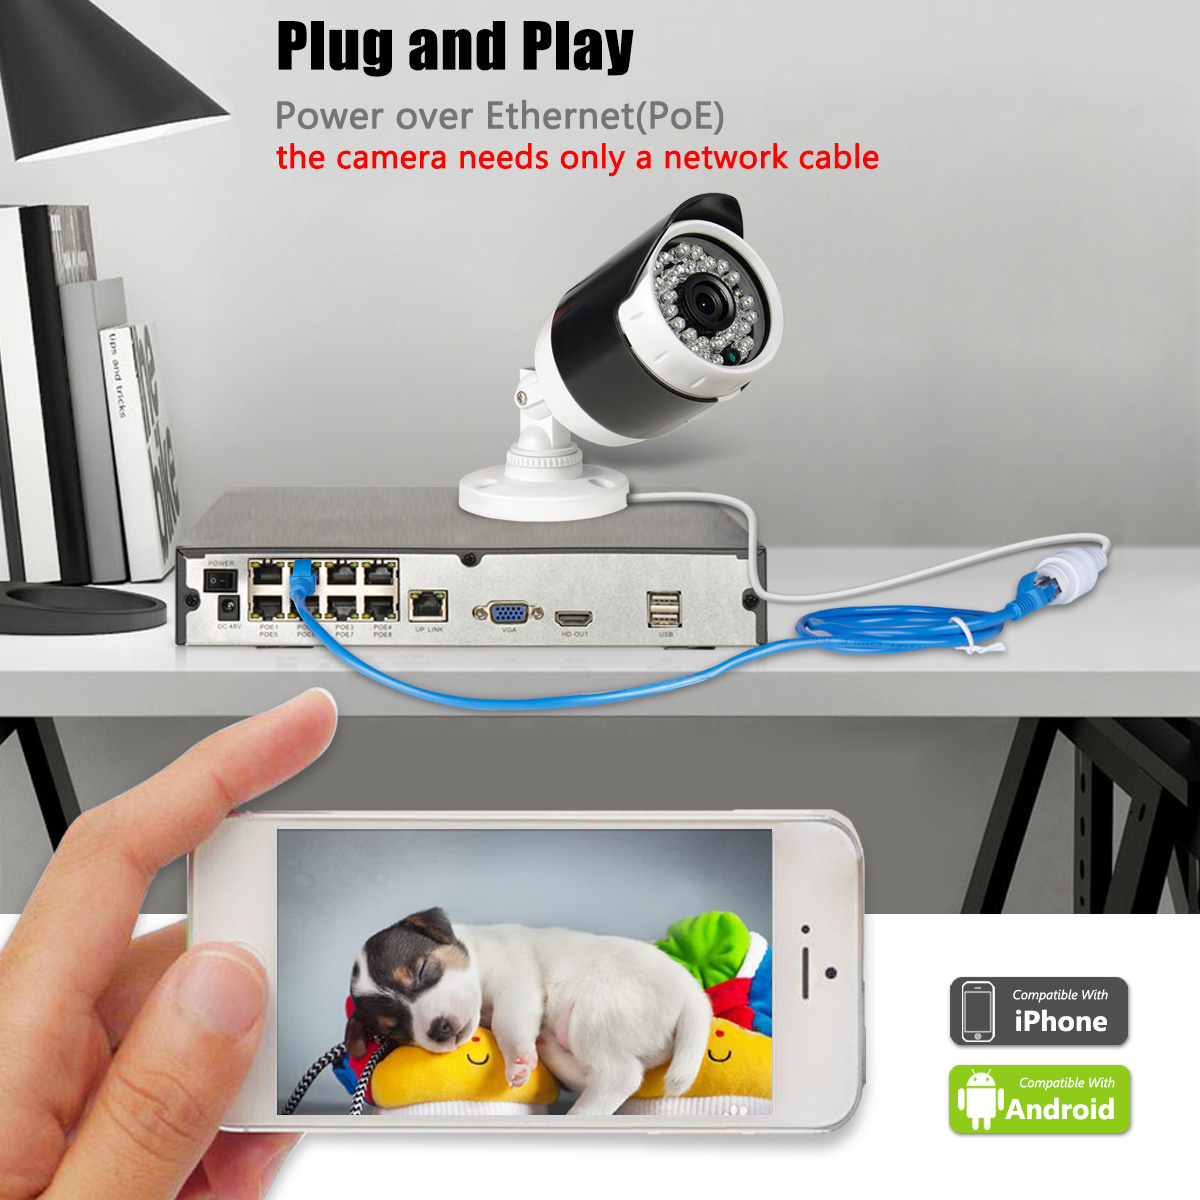 ANRAN 8 POE camera nvr with monitor indoor 8 channel 1080P security cctv camera system 2TB HDD